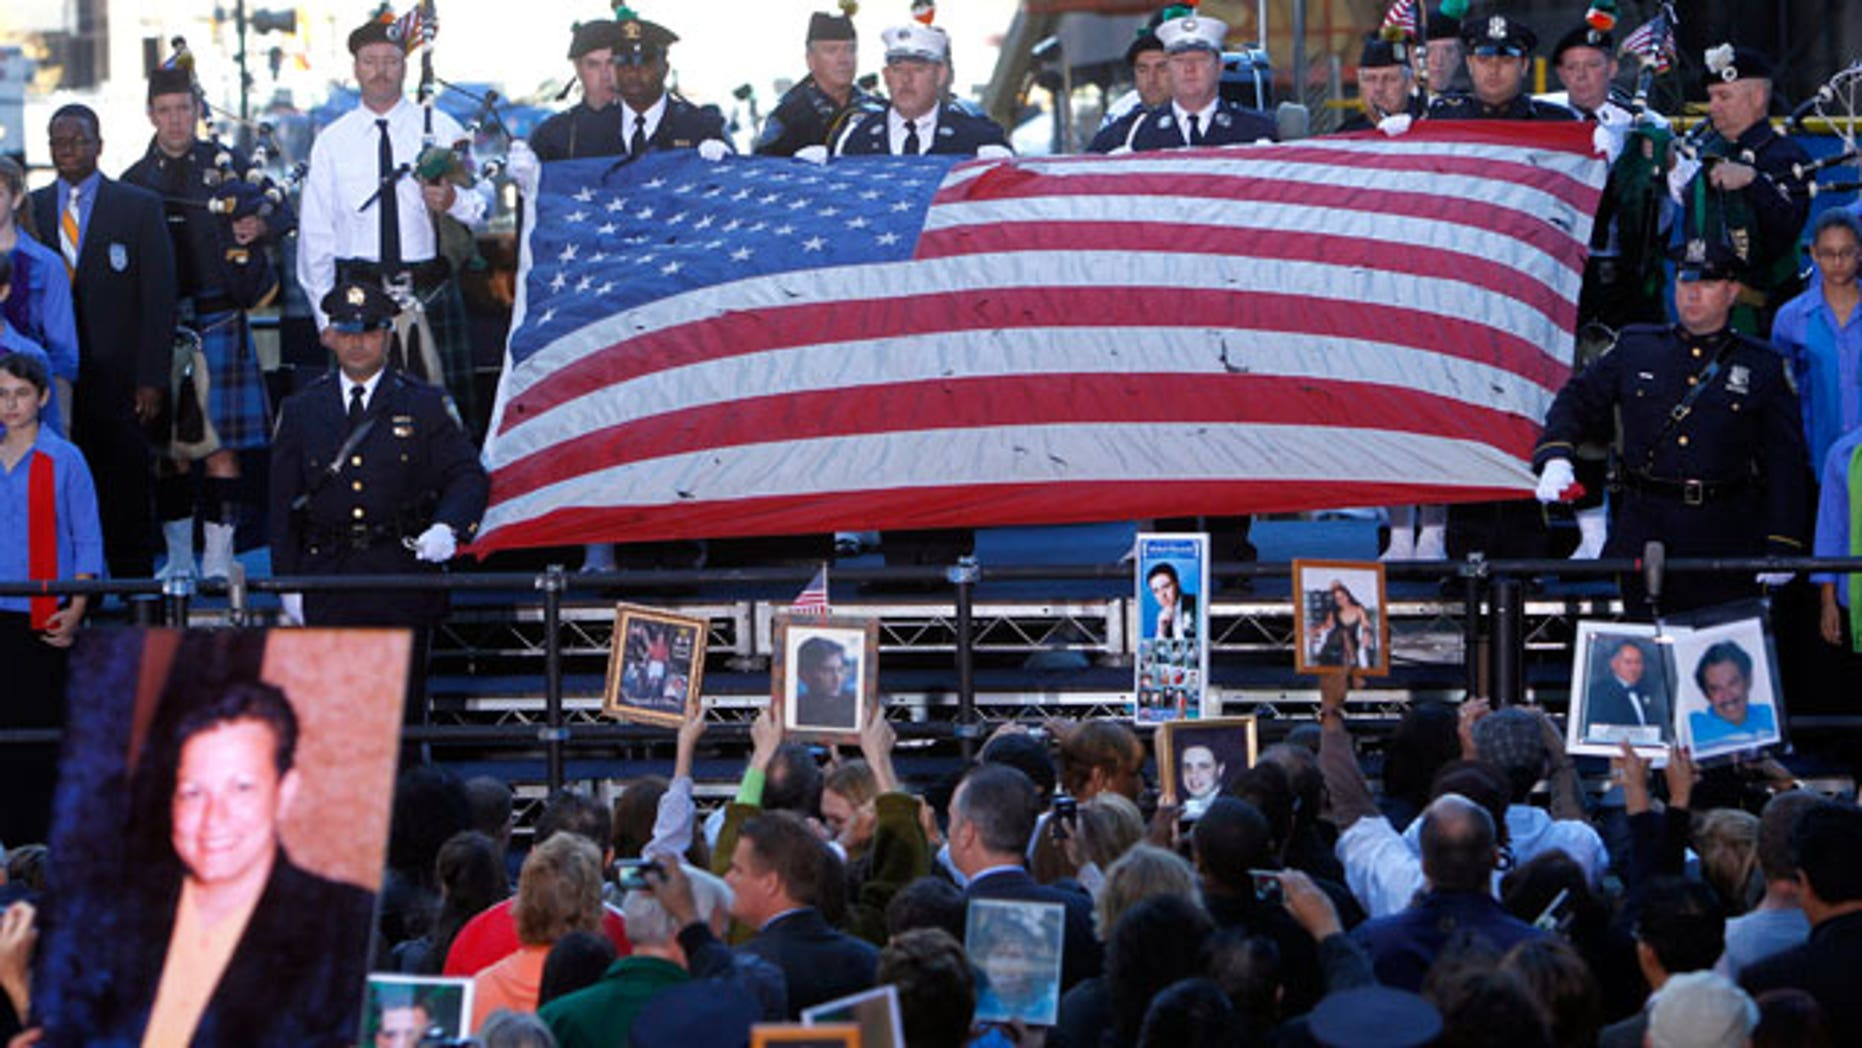 The World Trade Center flag is presented as friends and relatives of the victims of the Sept. 11, 2001 attacks gather for a commemoration ceremony at Zuccotti Park, adjacent to ground zero, on the ninth anniversary of the terrorist attacks on the World Trade Center, Saturday, Sept. 11, 2010 in New York.